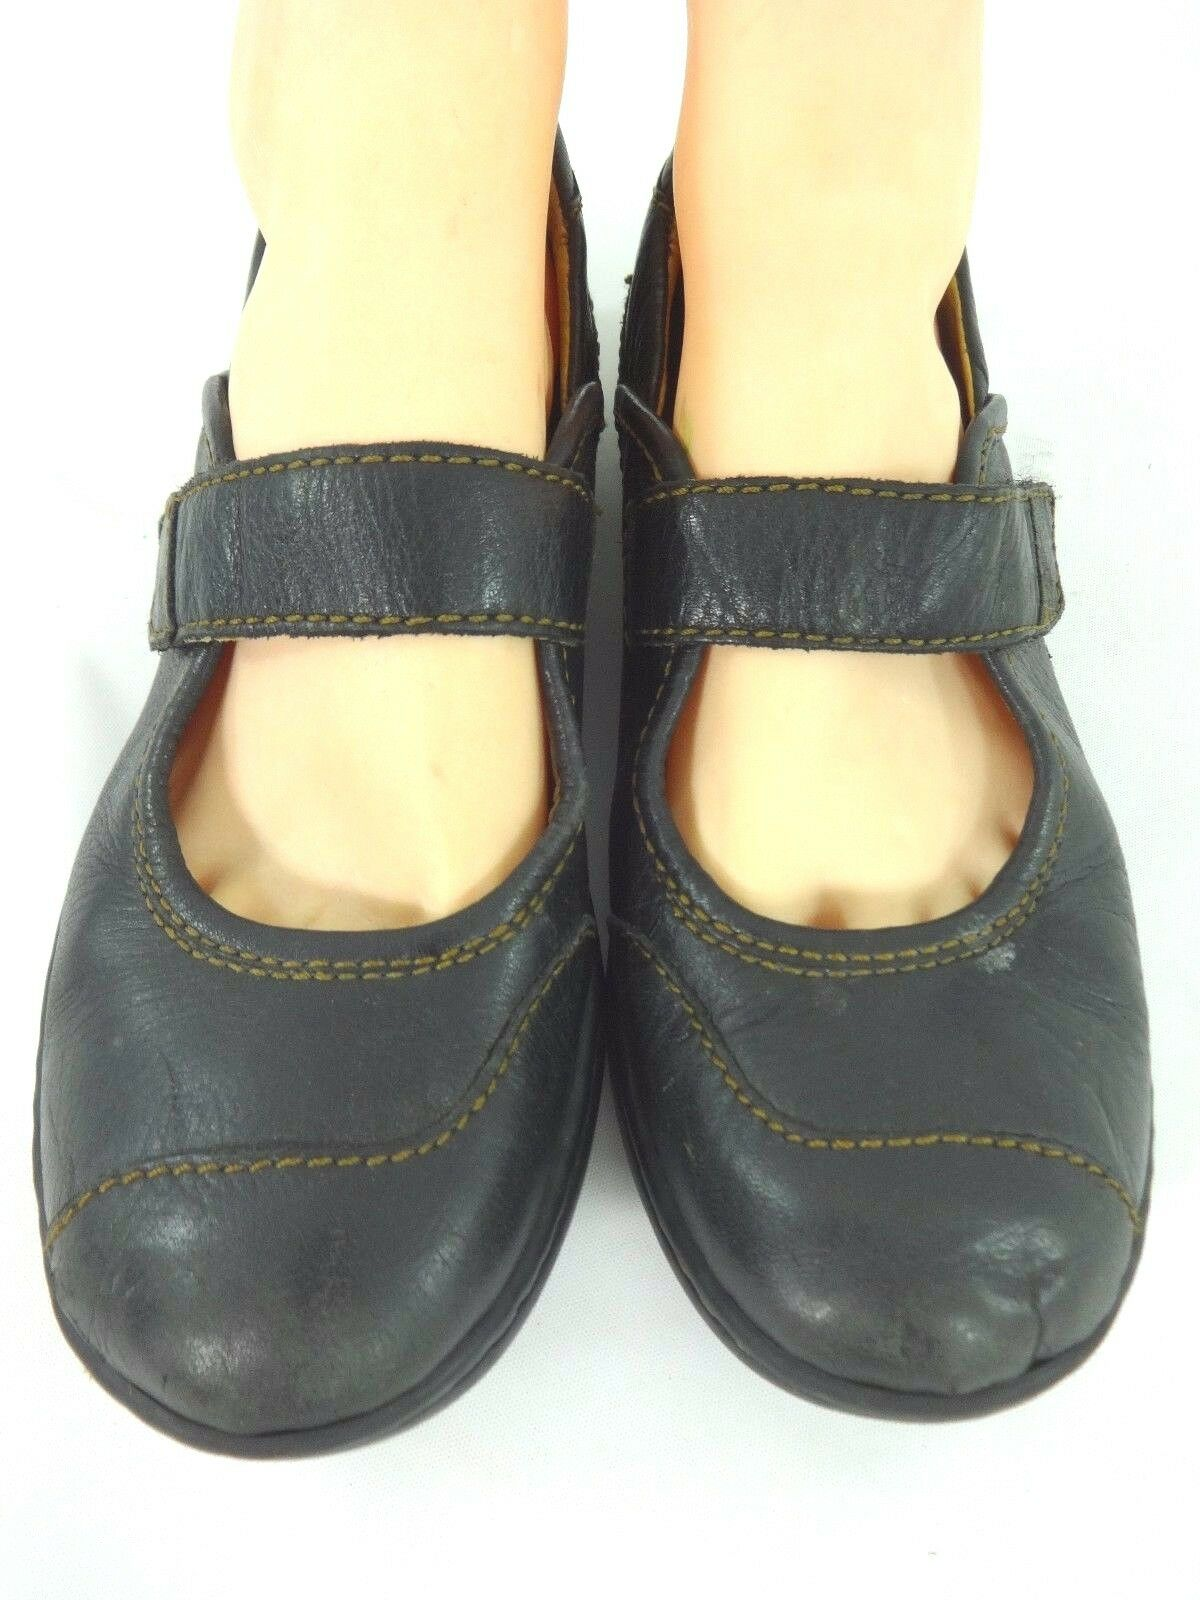 BORN WOMENS COMFORTABLE BLACK / LEATHER MARY JANES SIZE 8 / BLACK 39 477796